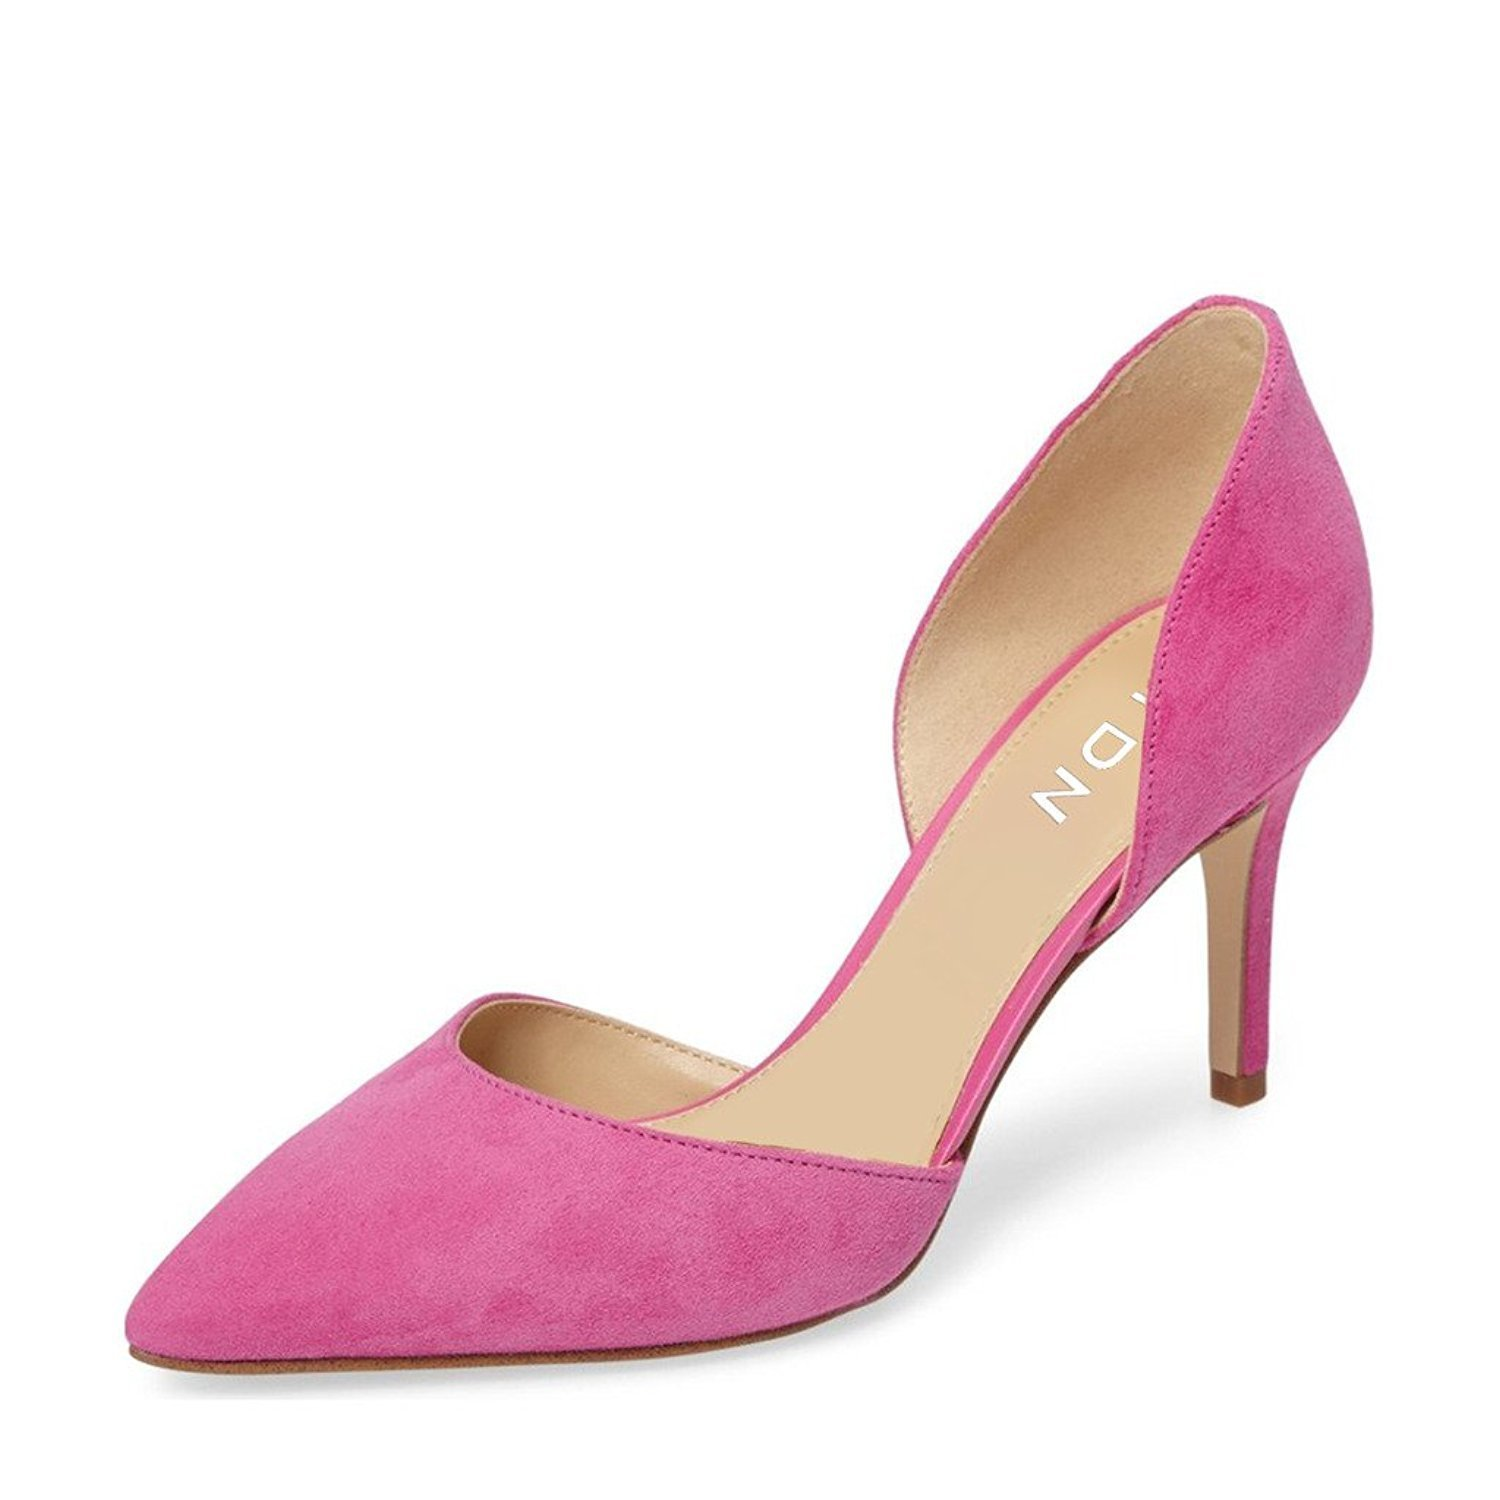 YDN Women Classic Low Heels D'Orsay Pumps Suede Pointed Toe Slip On Dressy Stilettos Shoes B01N6GDO73 6 B(M) US|Pink